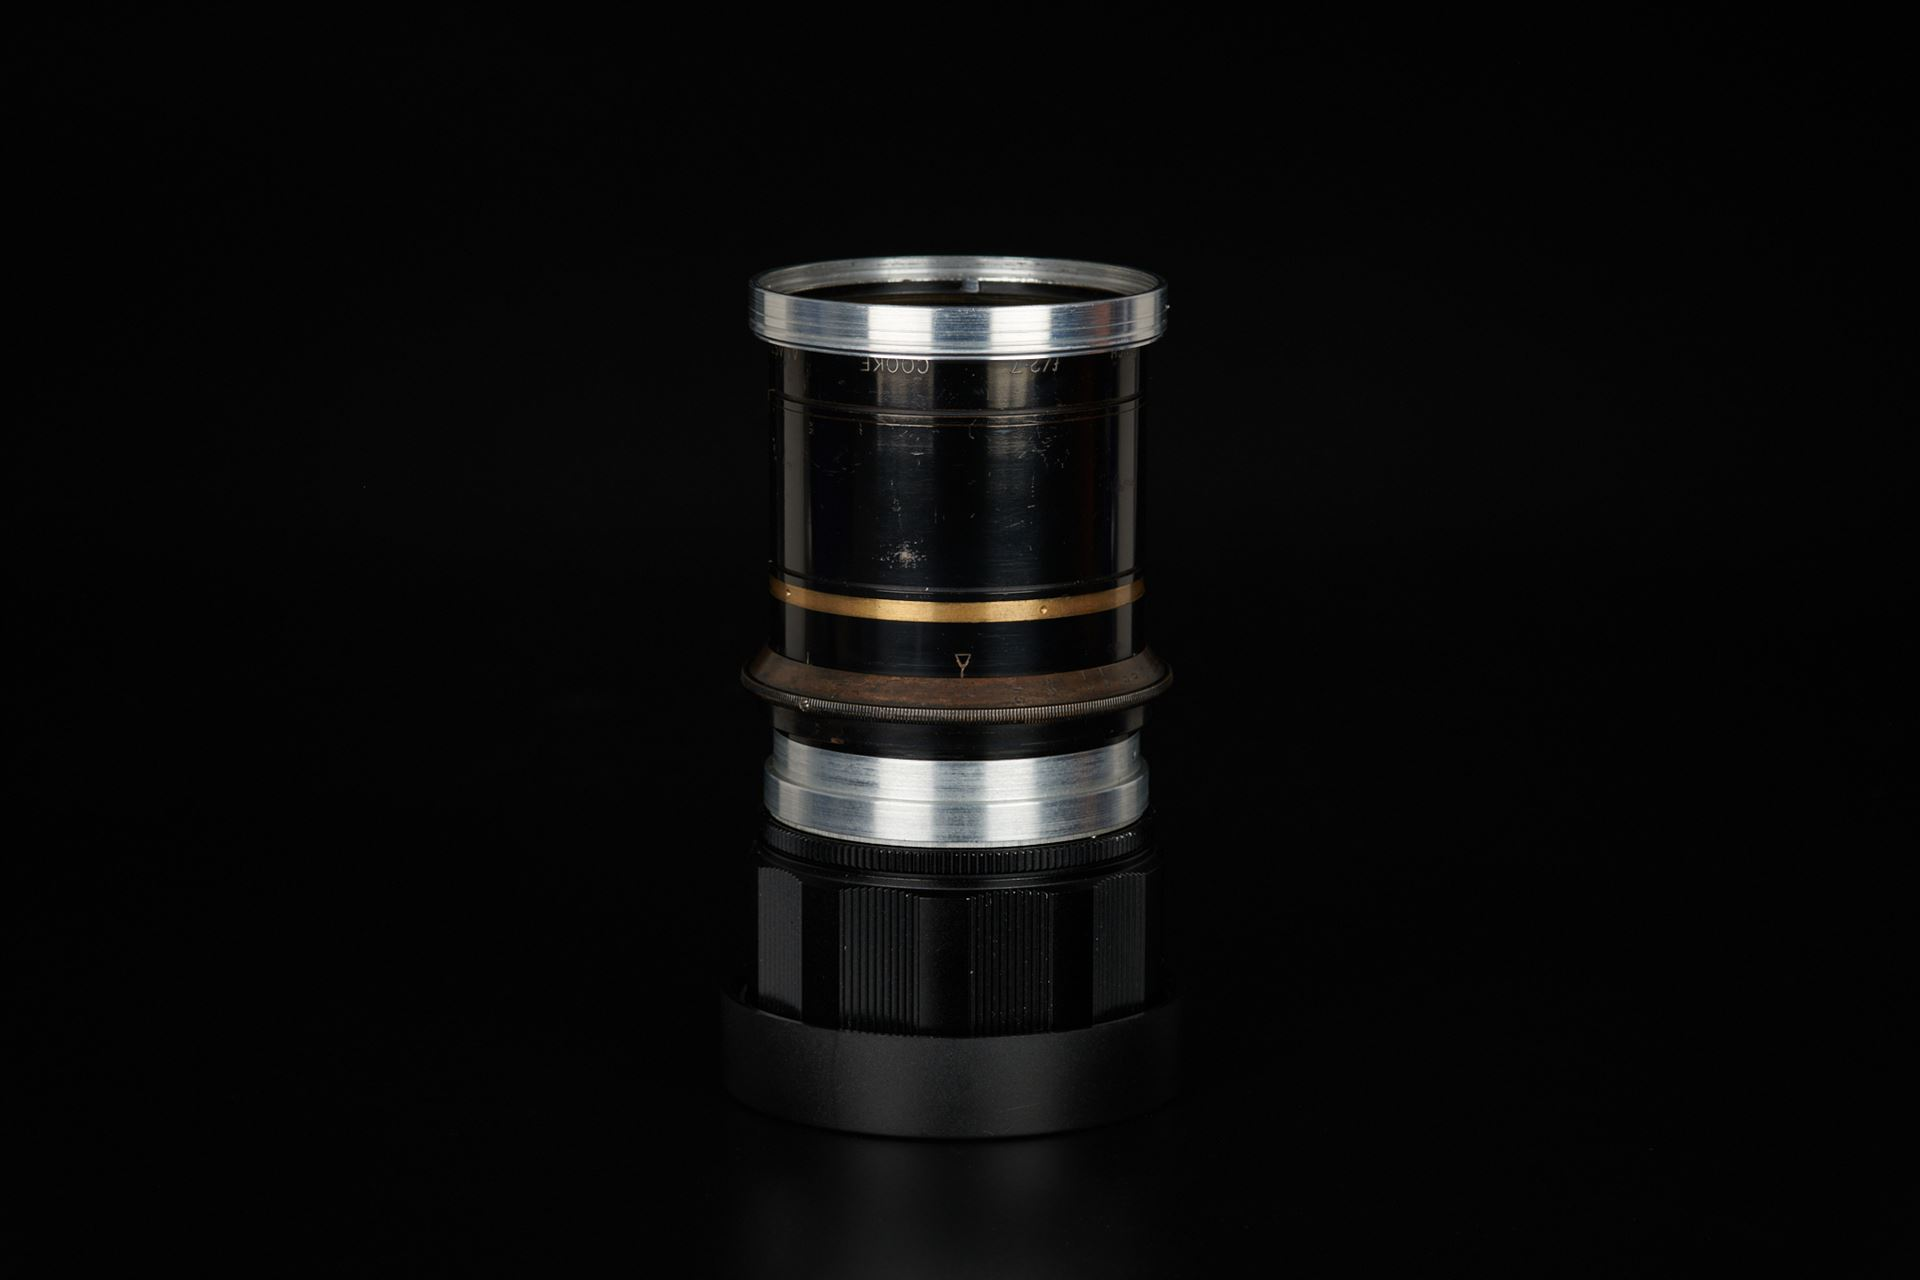 Picture of cooke technicolor 6inch f/2.7 modified to hasselblad v